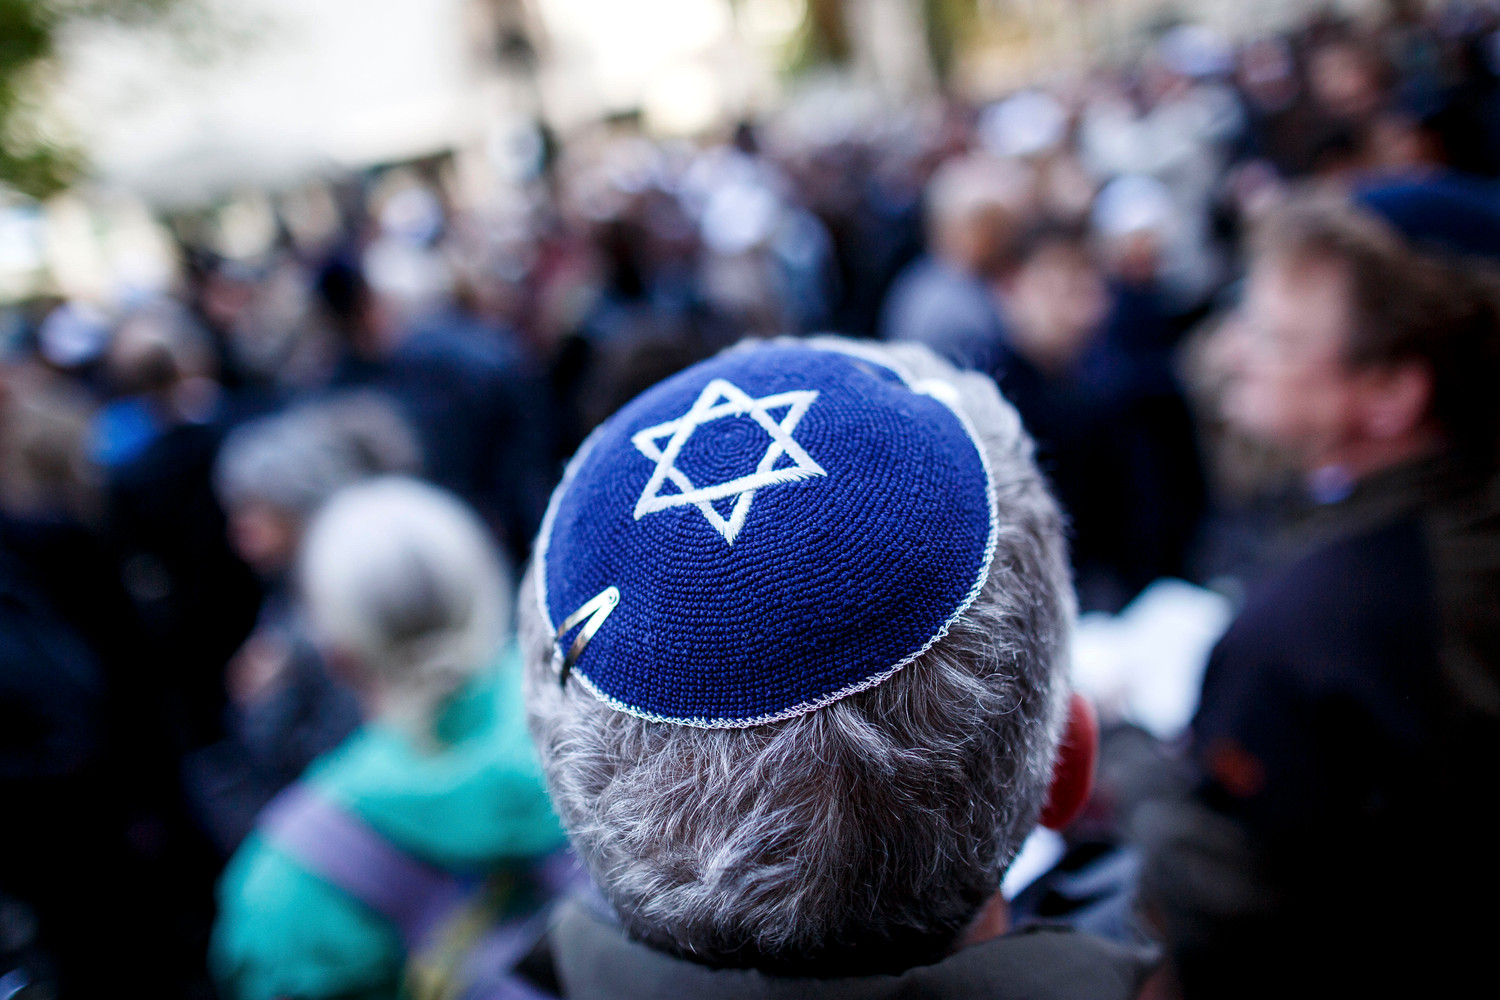 A man wearing a kippah at an April 25 gathering in Berlin to protest anti-Semitism.